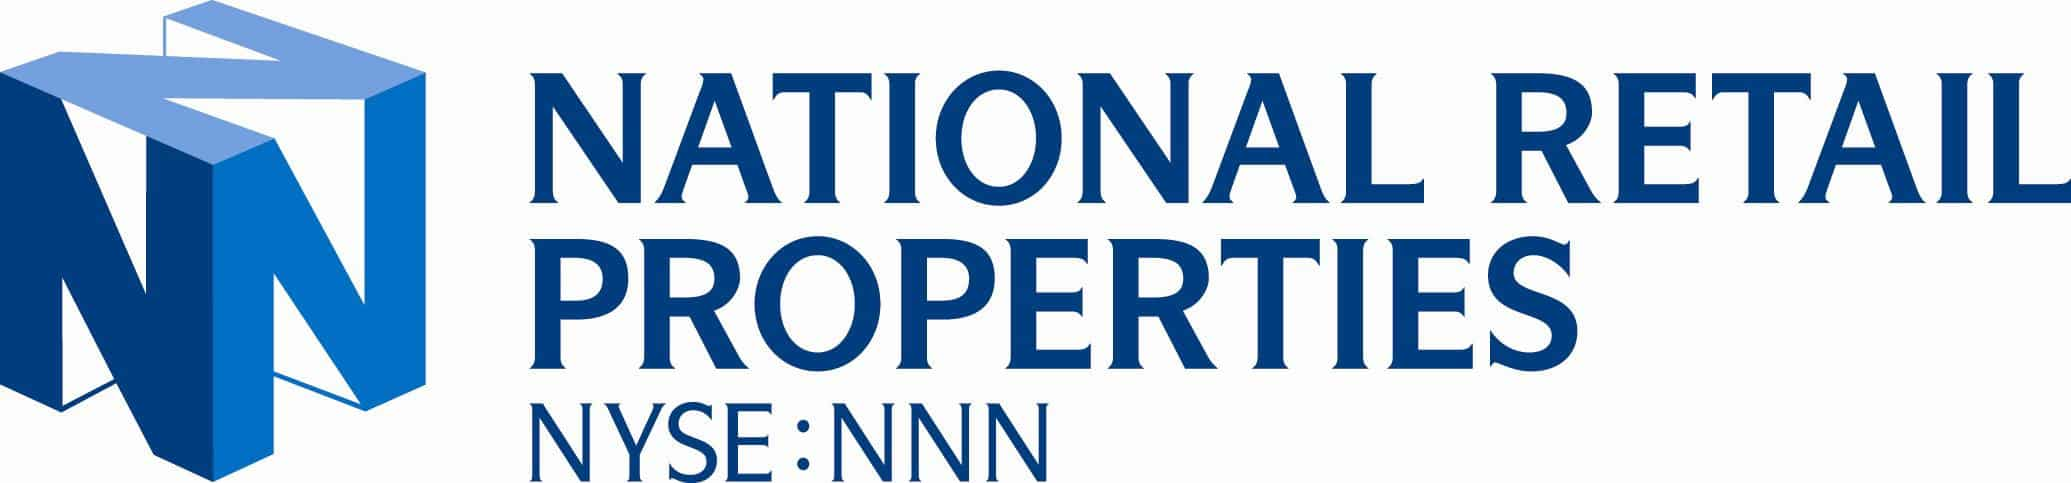 National Retail Properties